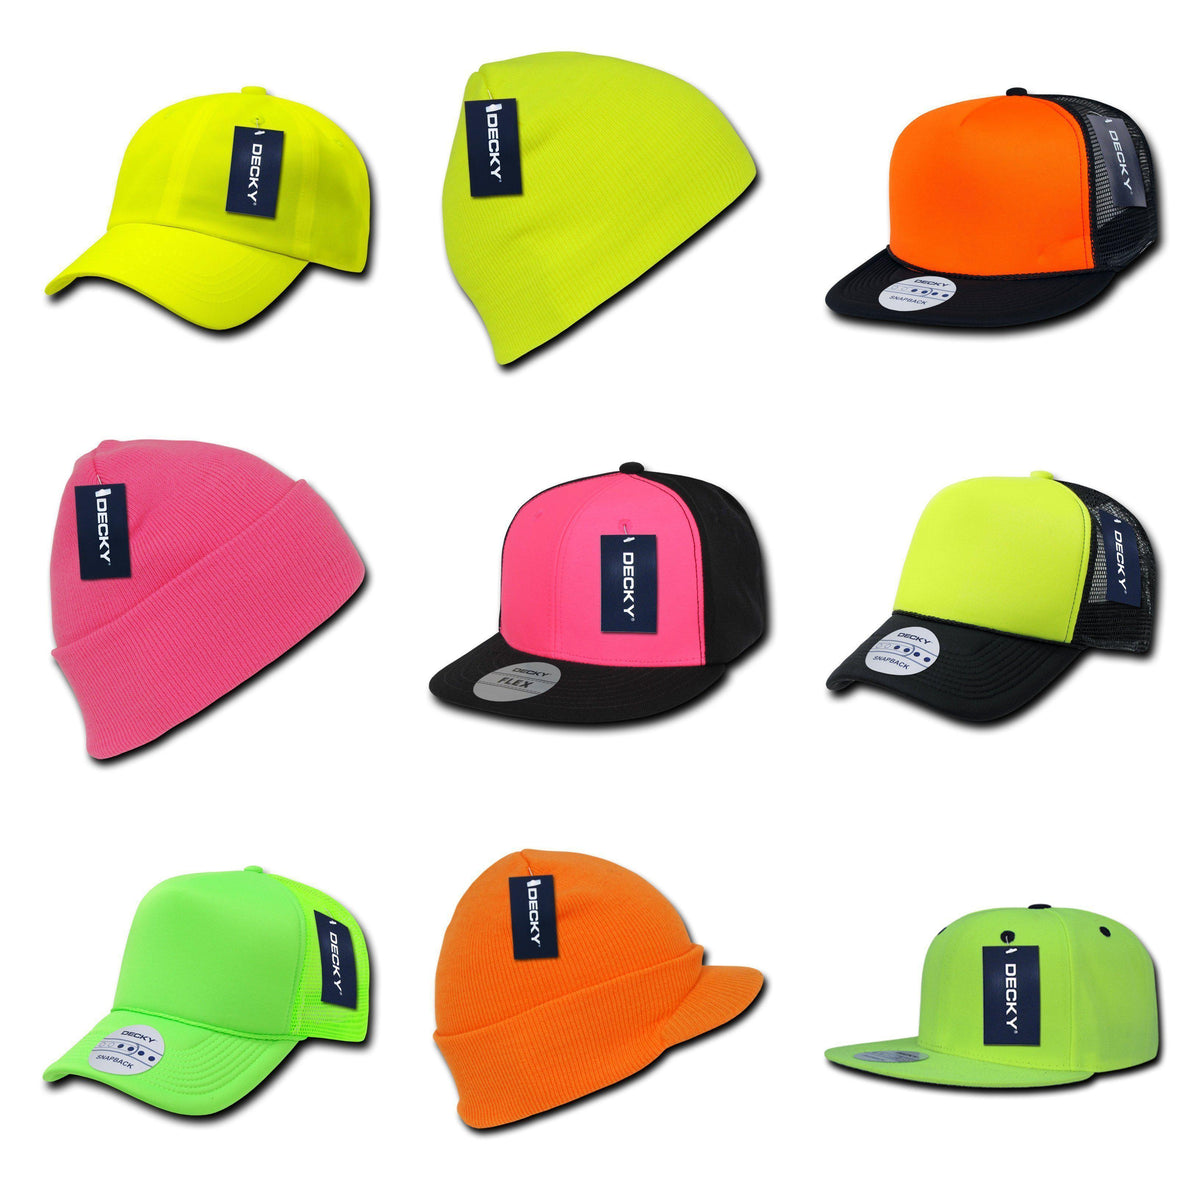 04421177e Wholesale Neon Hats in Bulk - Blank or Custom Embroidered ...